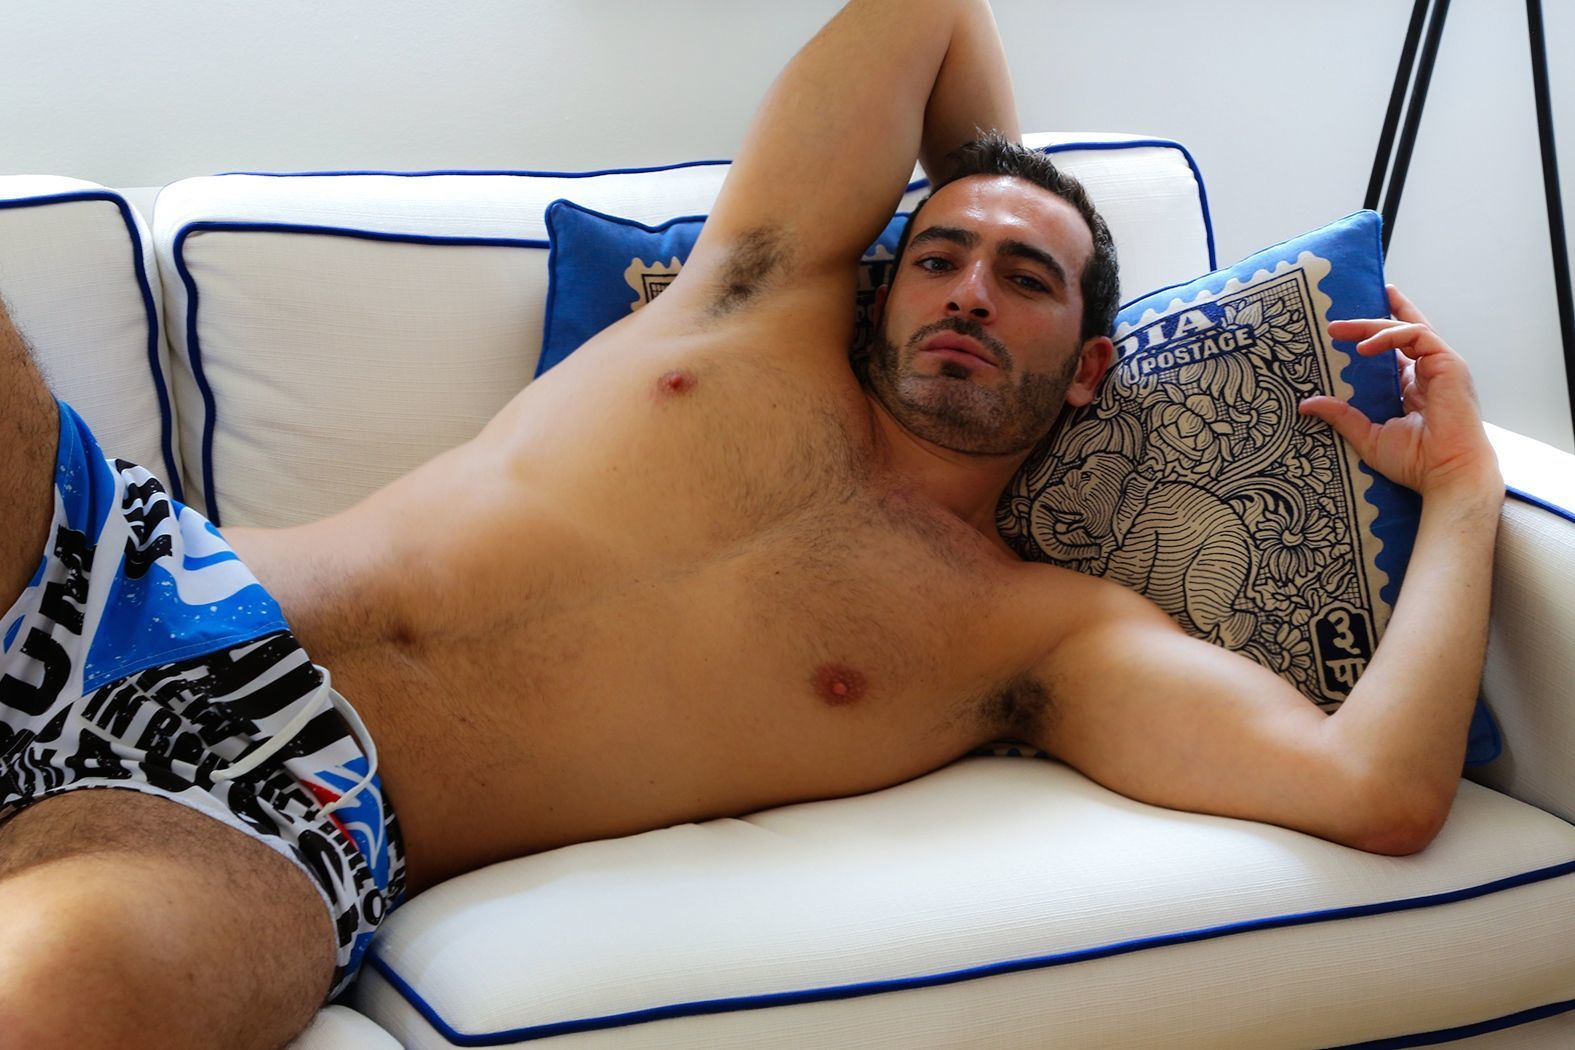 pono gay escort a paris